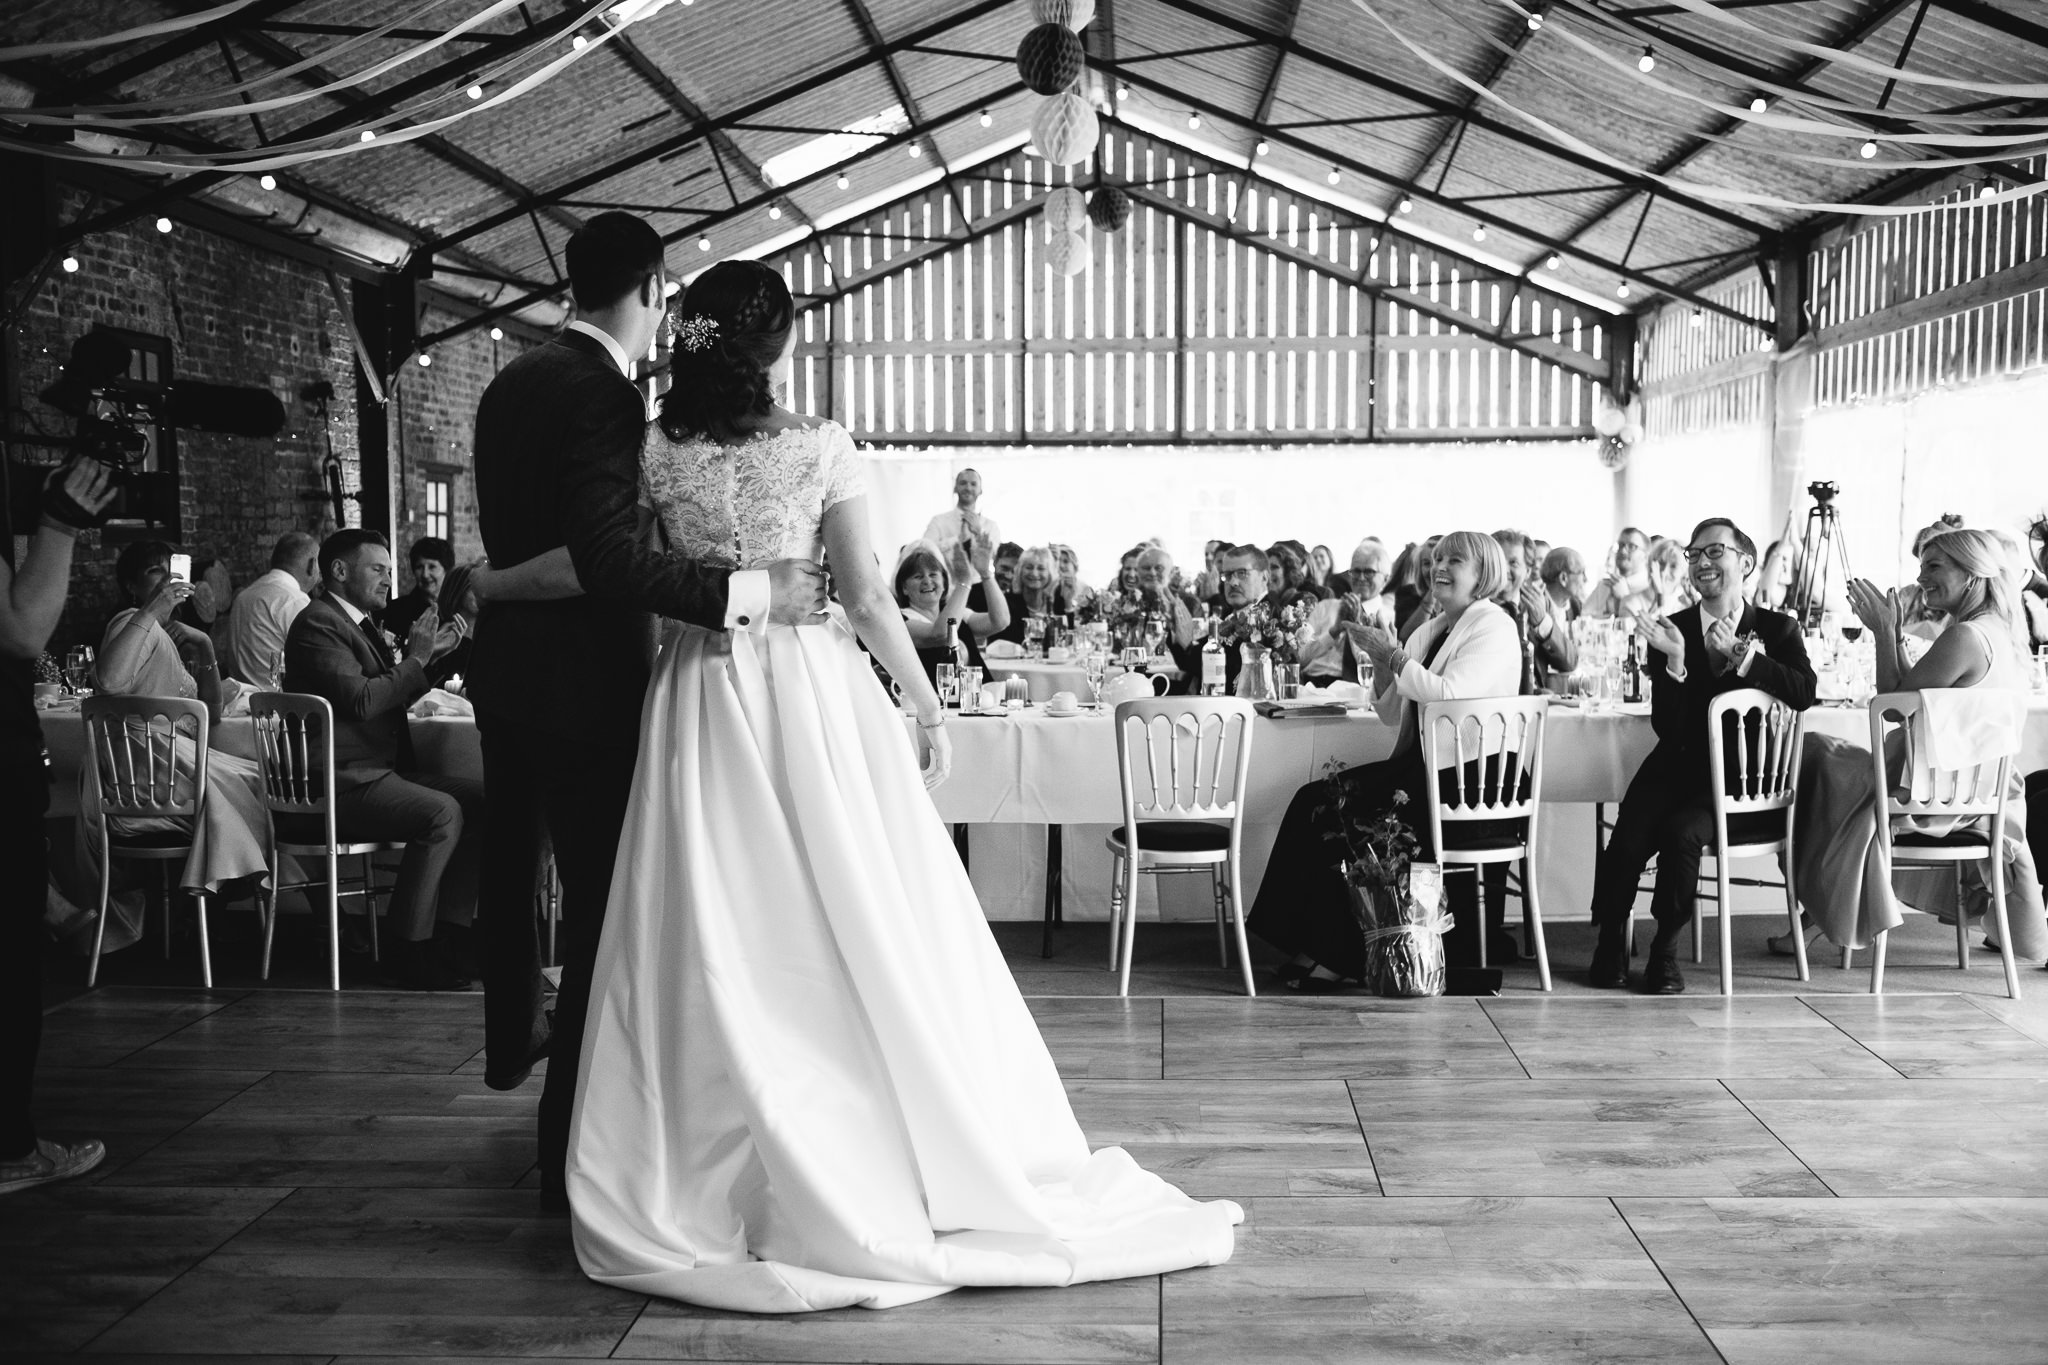 Black and white photo of a bride and groom cuddling while their guest look on